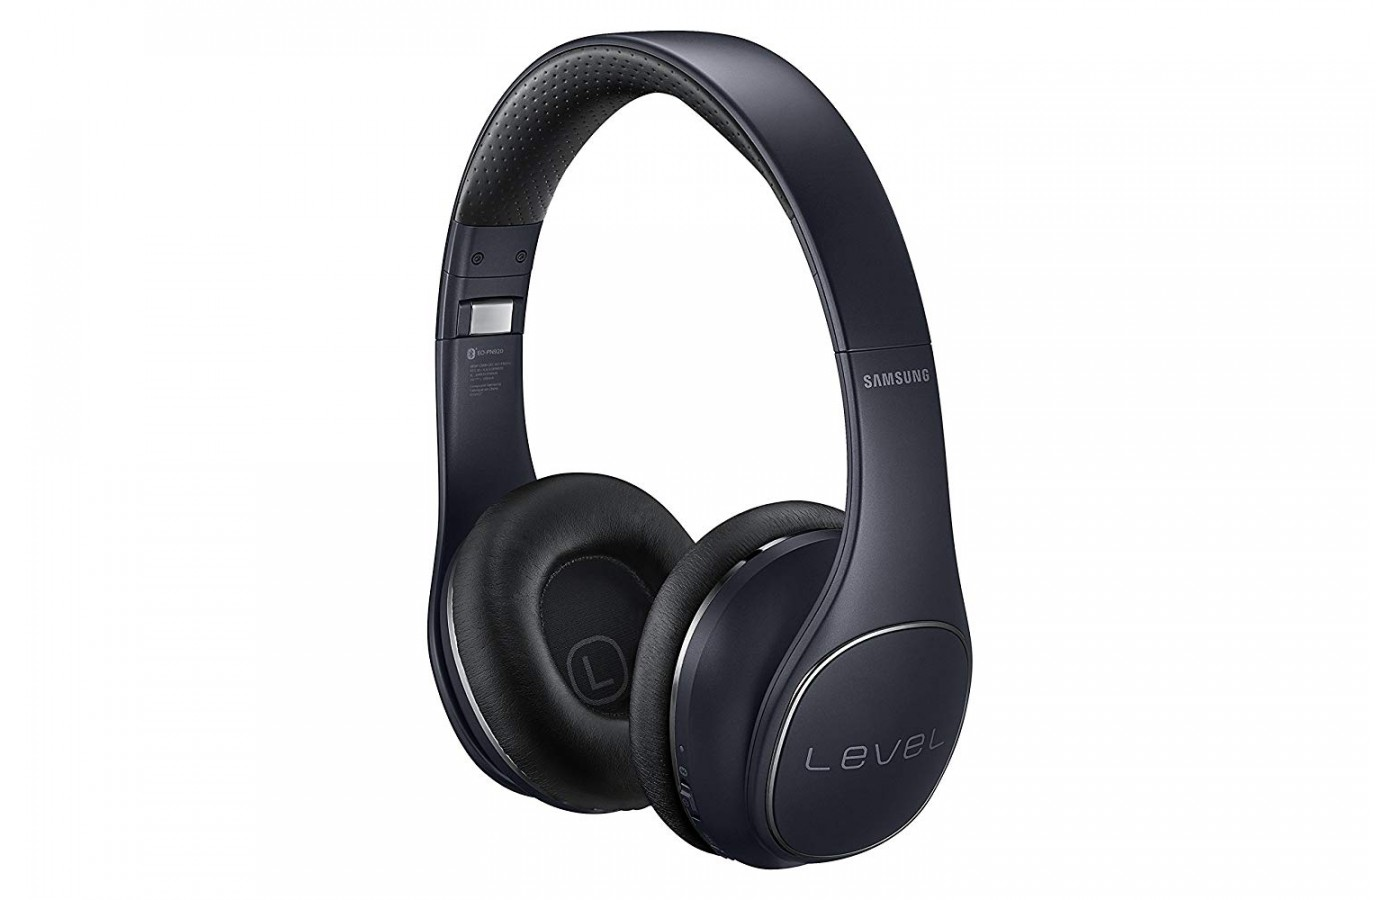 Level On headphones are available in black, white, red, and blue.